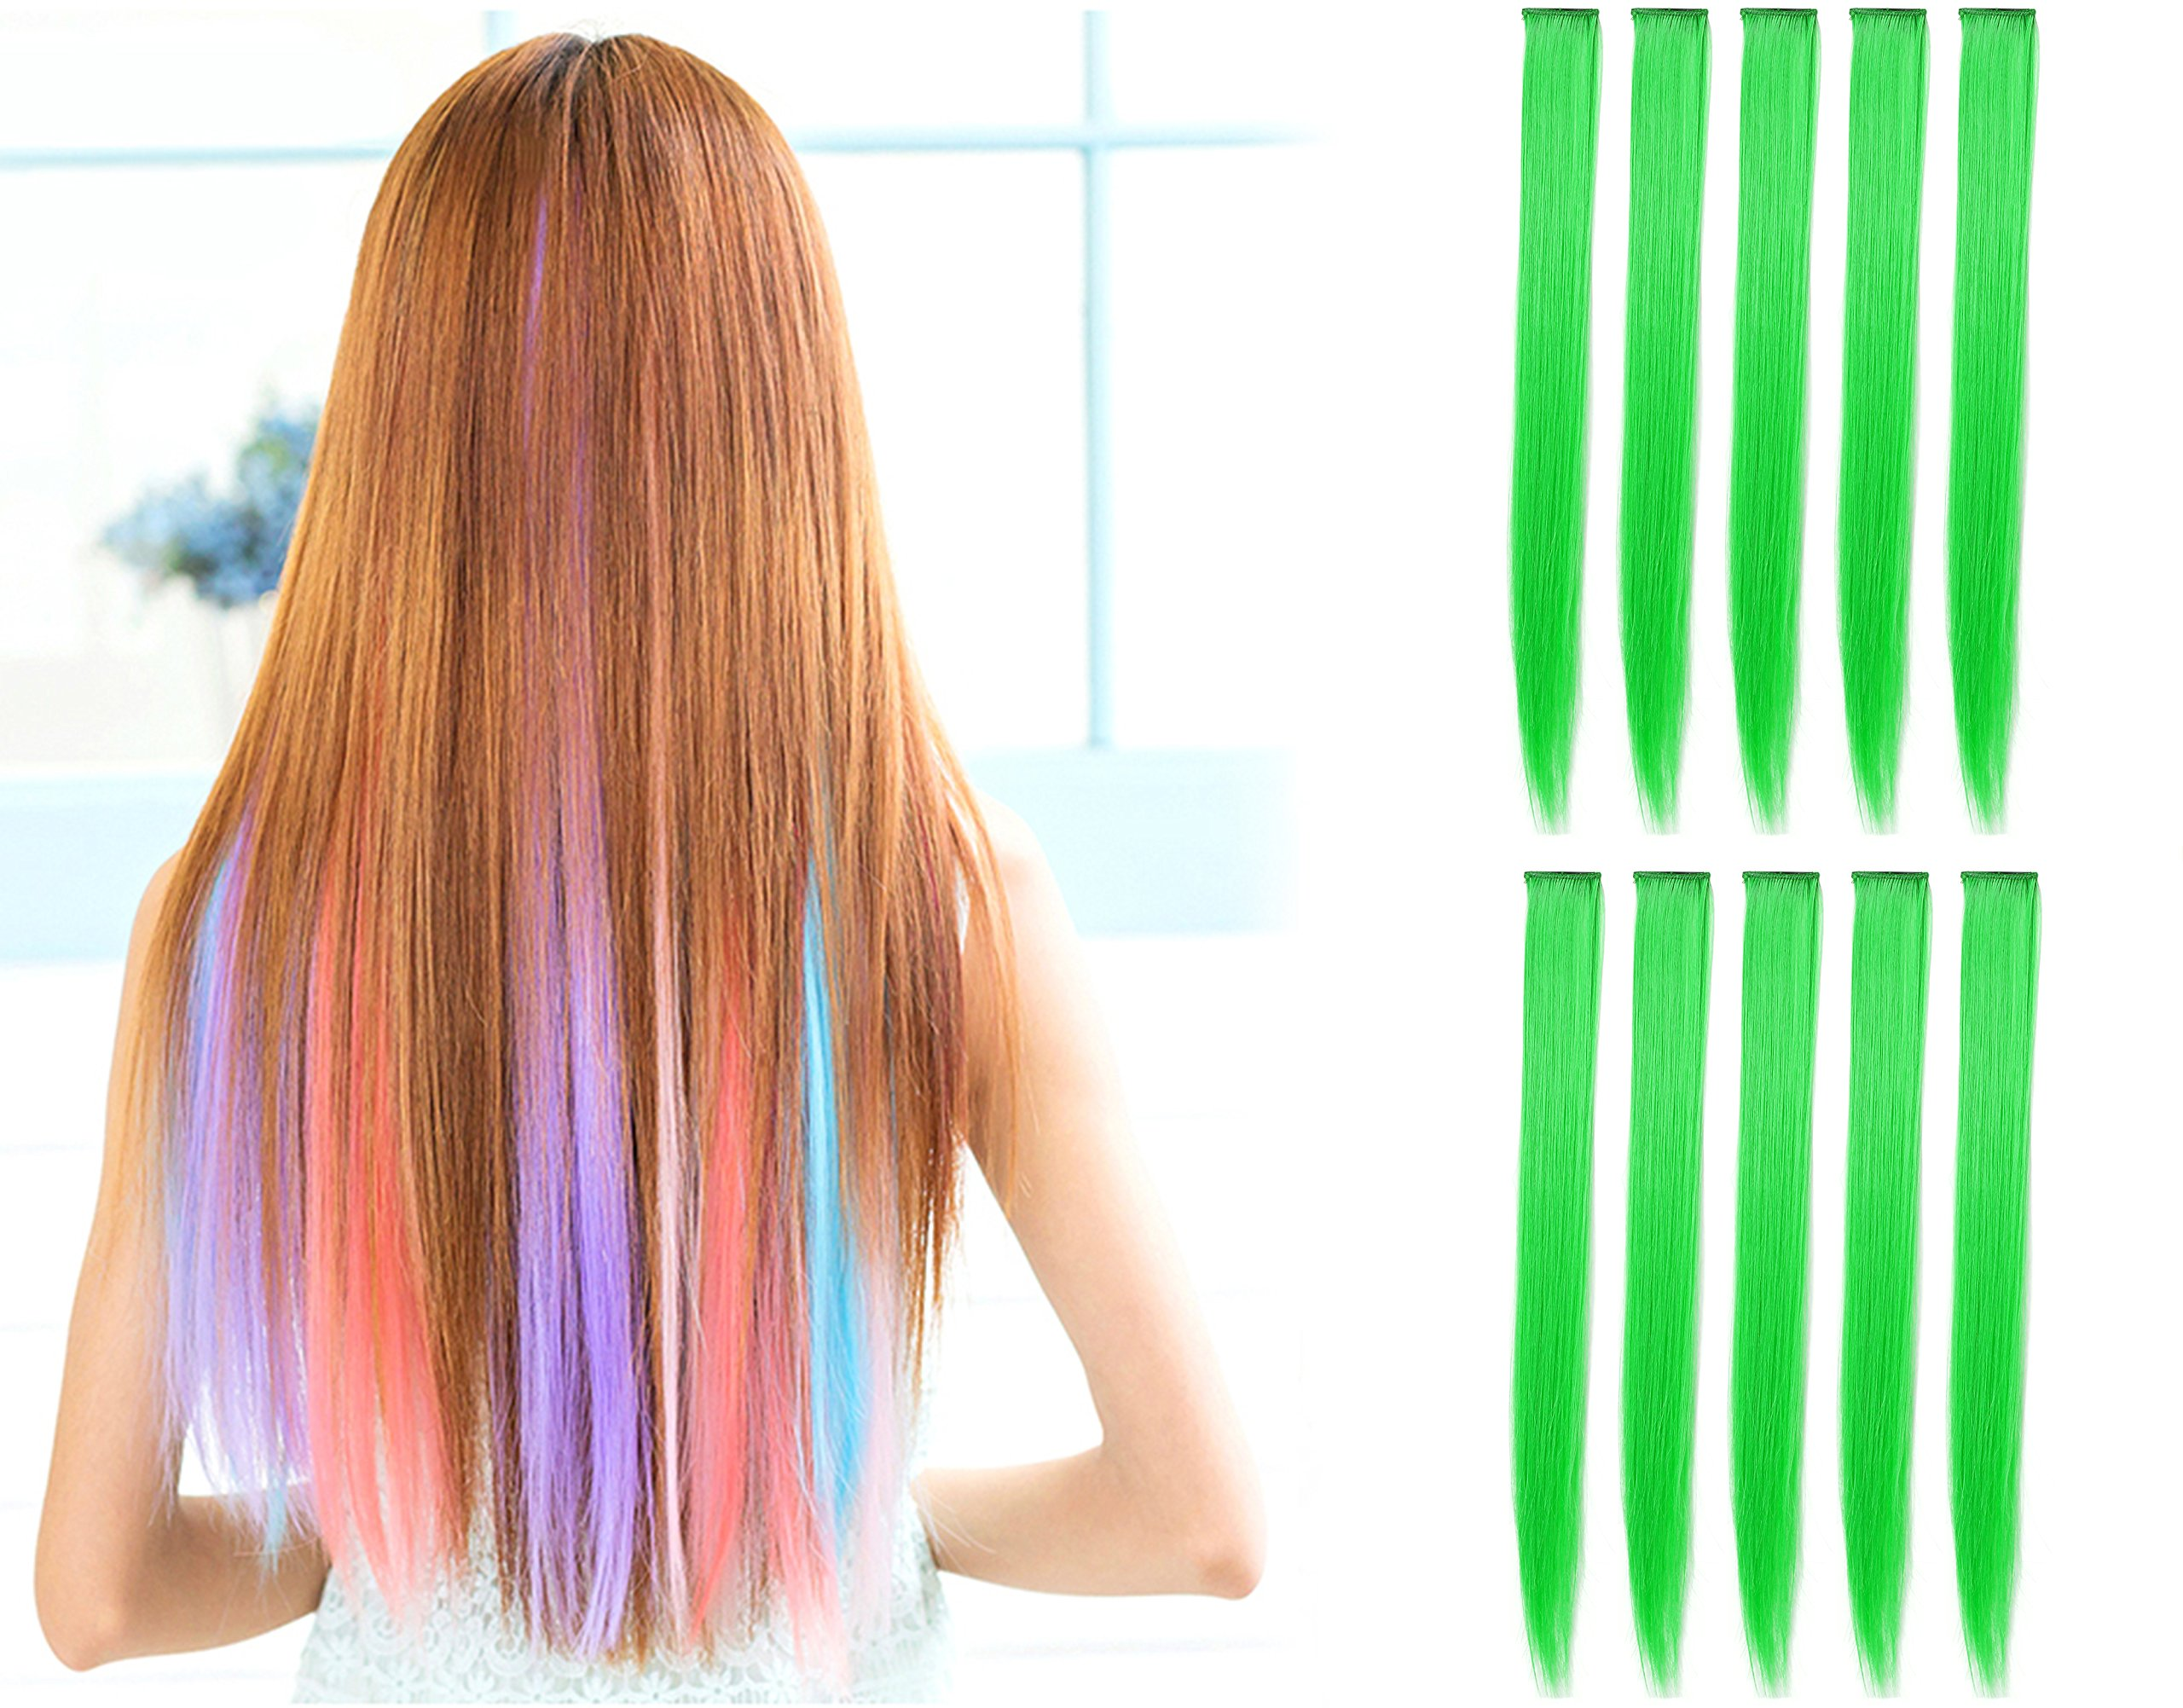 OneDor 23 Inch Straight Colored Party Highlight Clip on in Hair Extensions 12 Multiple Colors (10 Pcs Green)